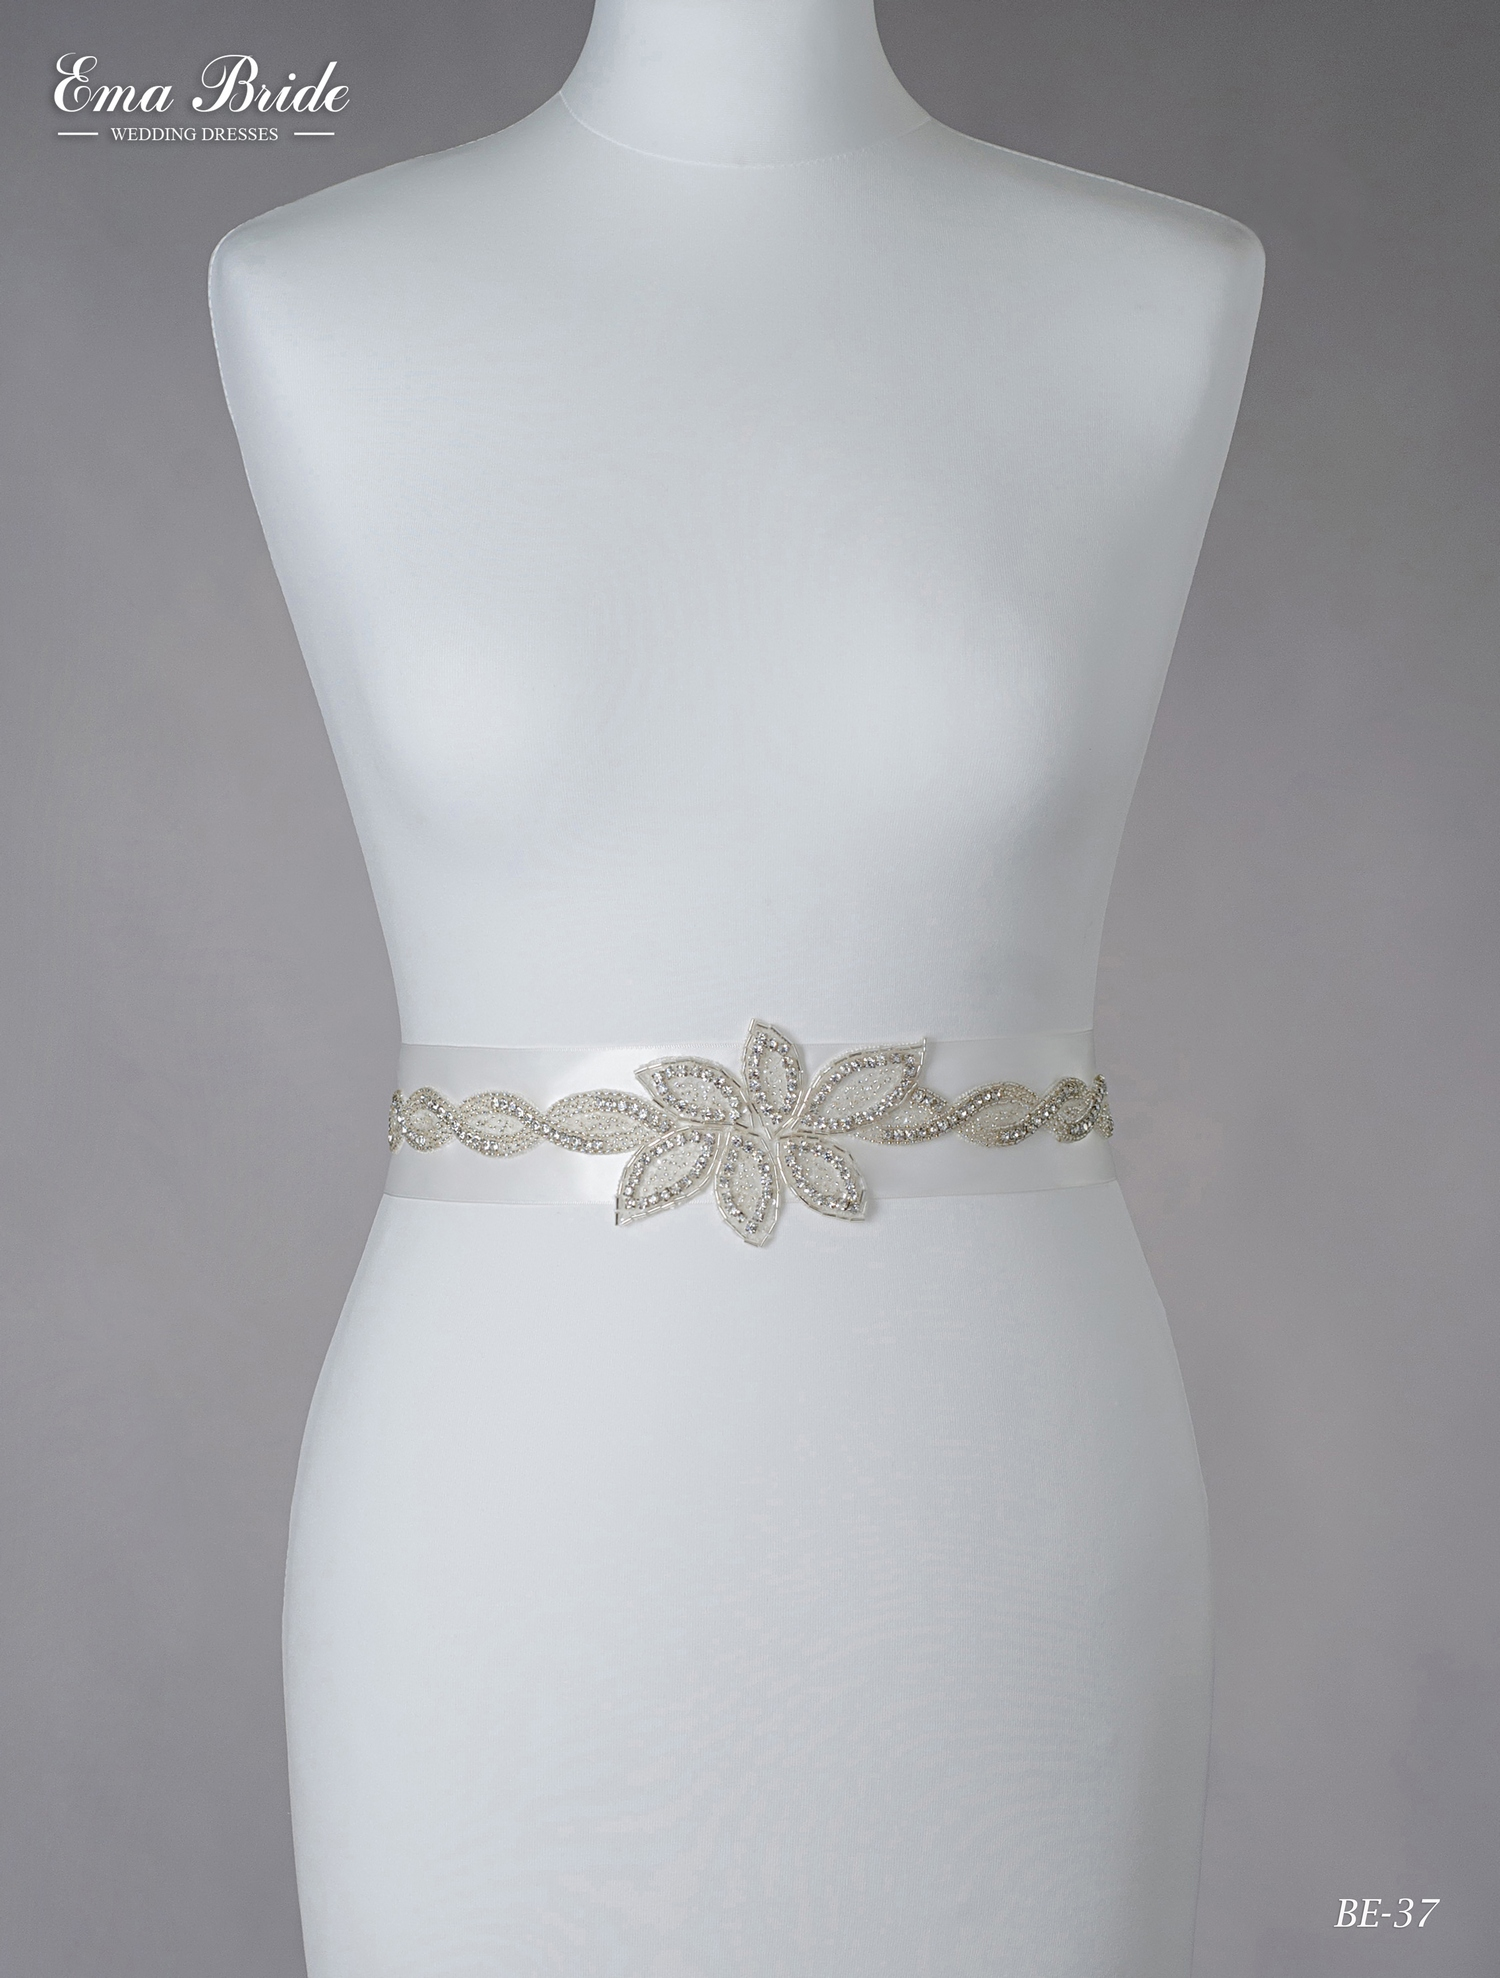 A belt for a wedding dress Be-37